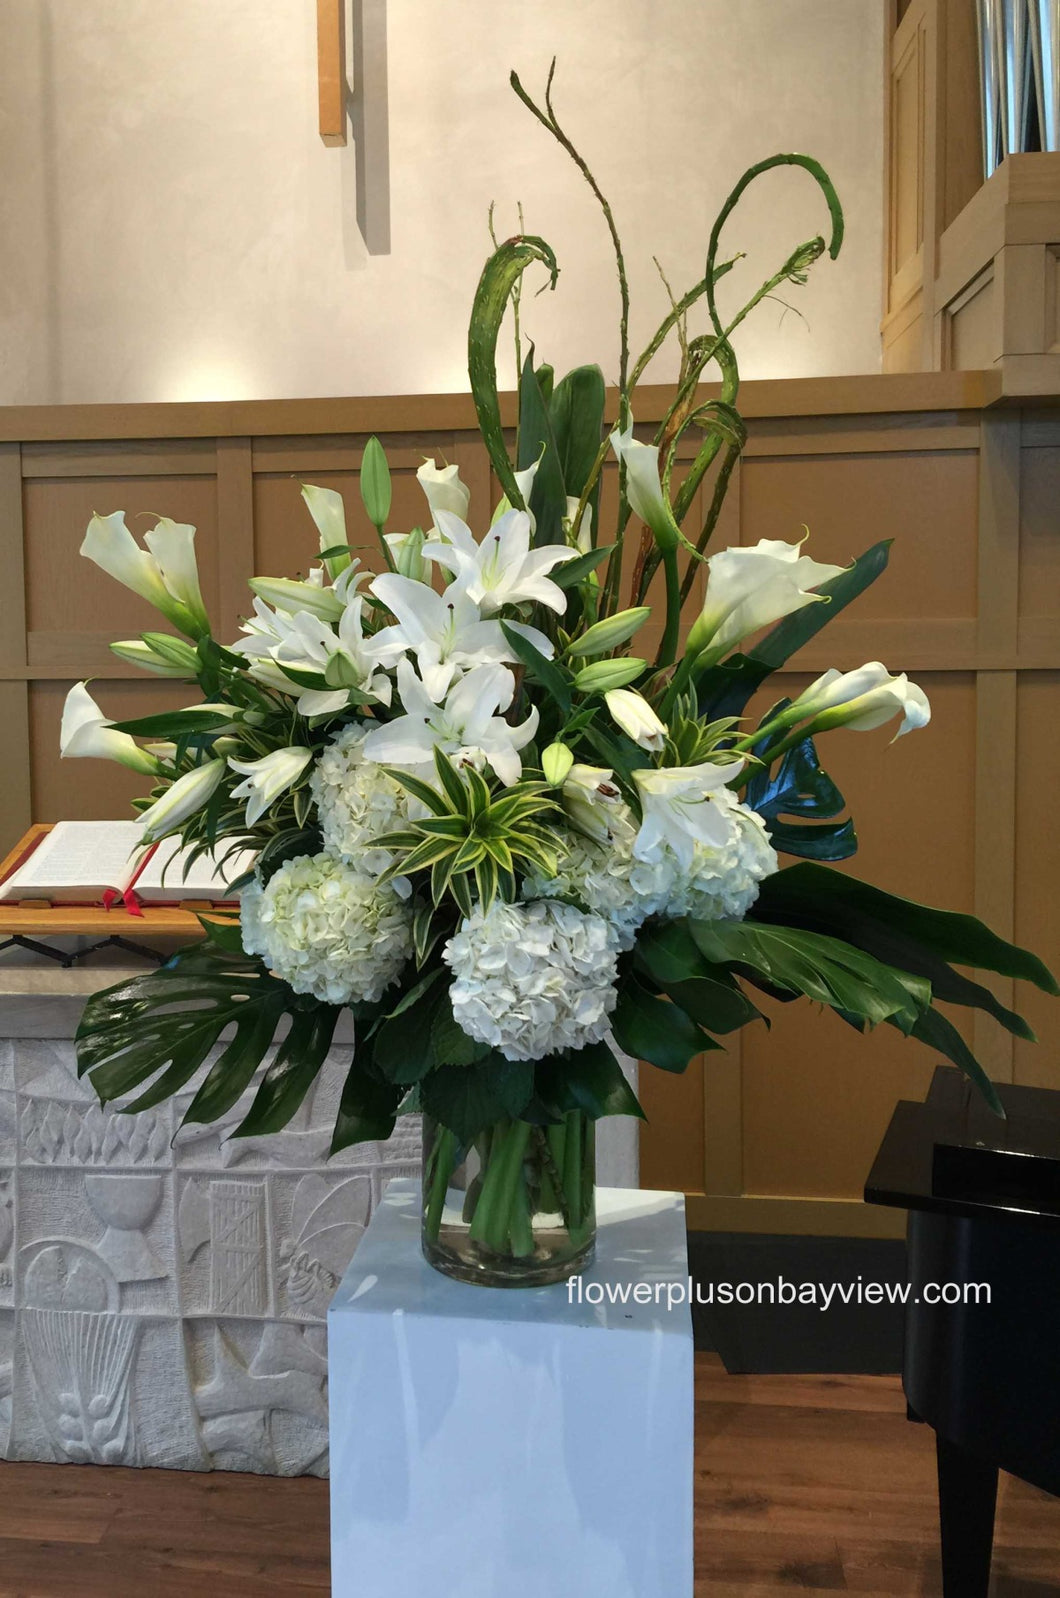 FNV75 - Modern White and Green Vase Arrangement - Flowerplustoronto